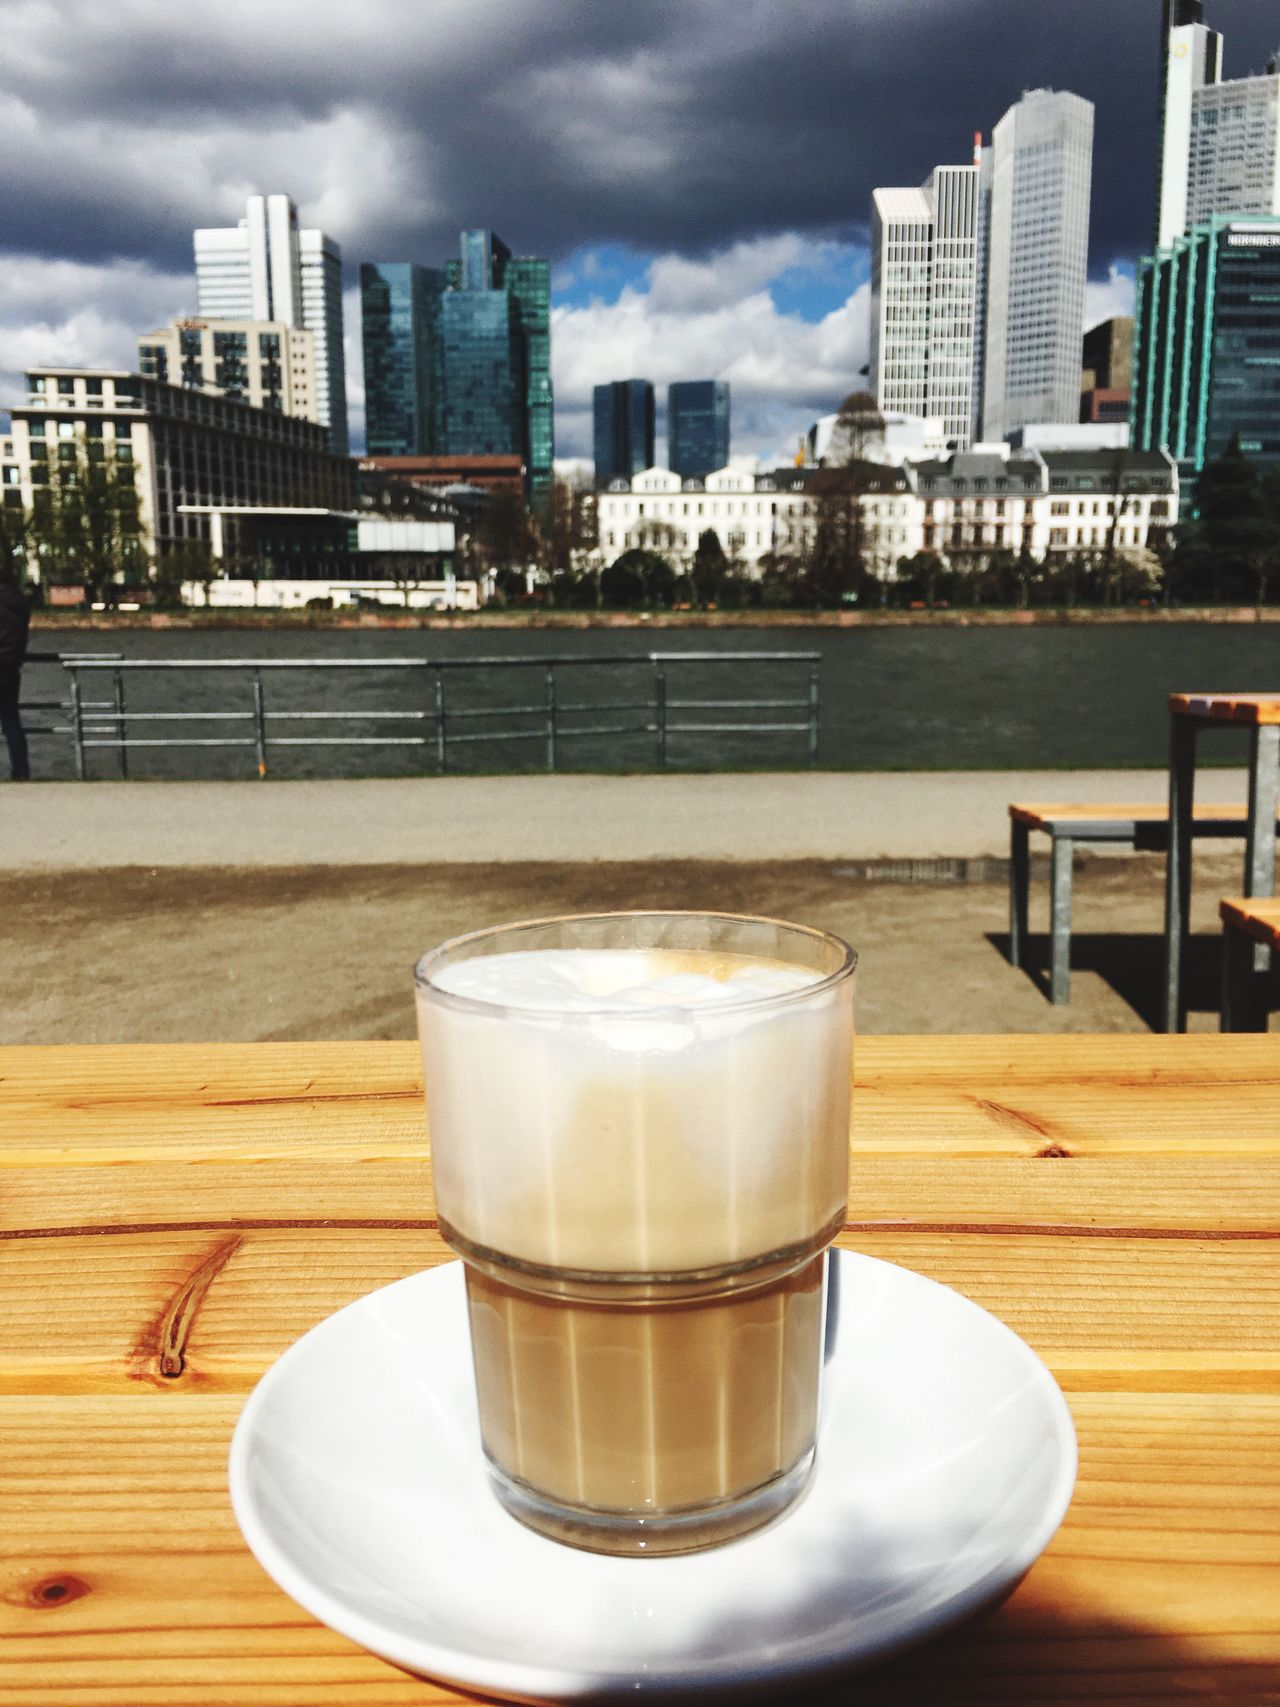 Beautiful stock photos of kaffee, Architecture, Building Exterior, Built Structure, Cafe